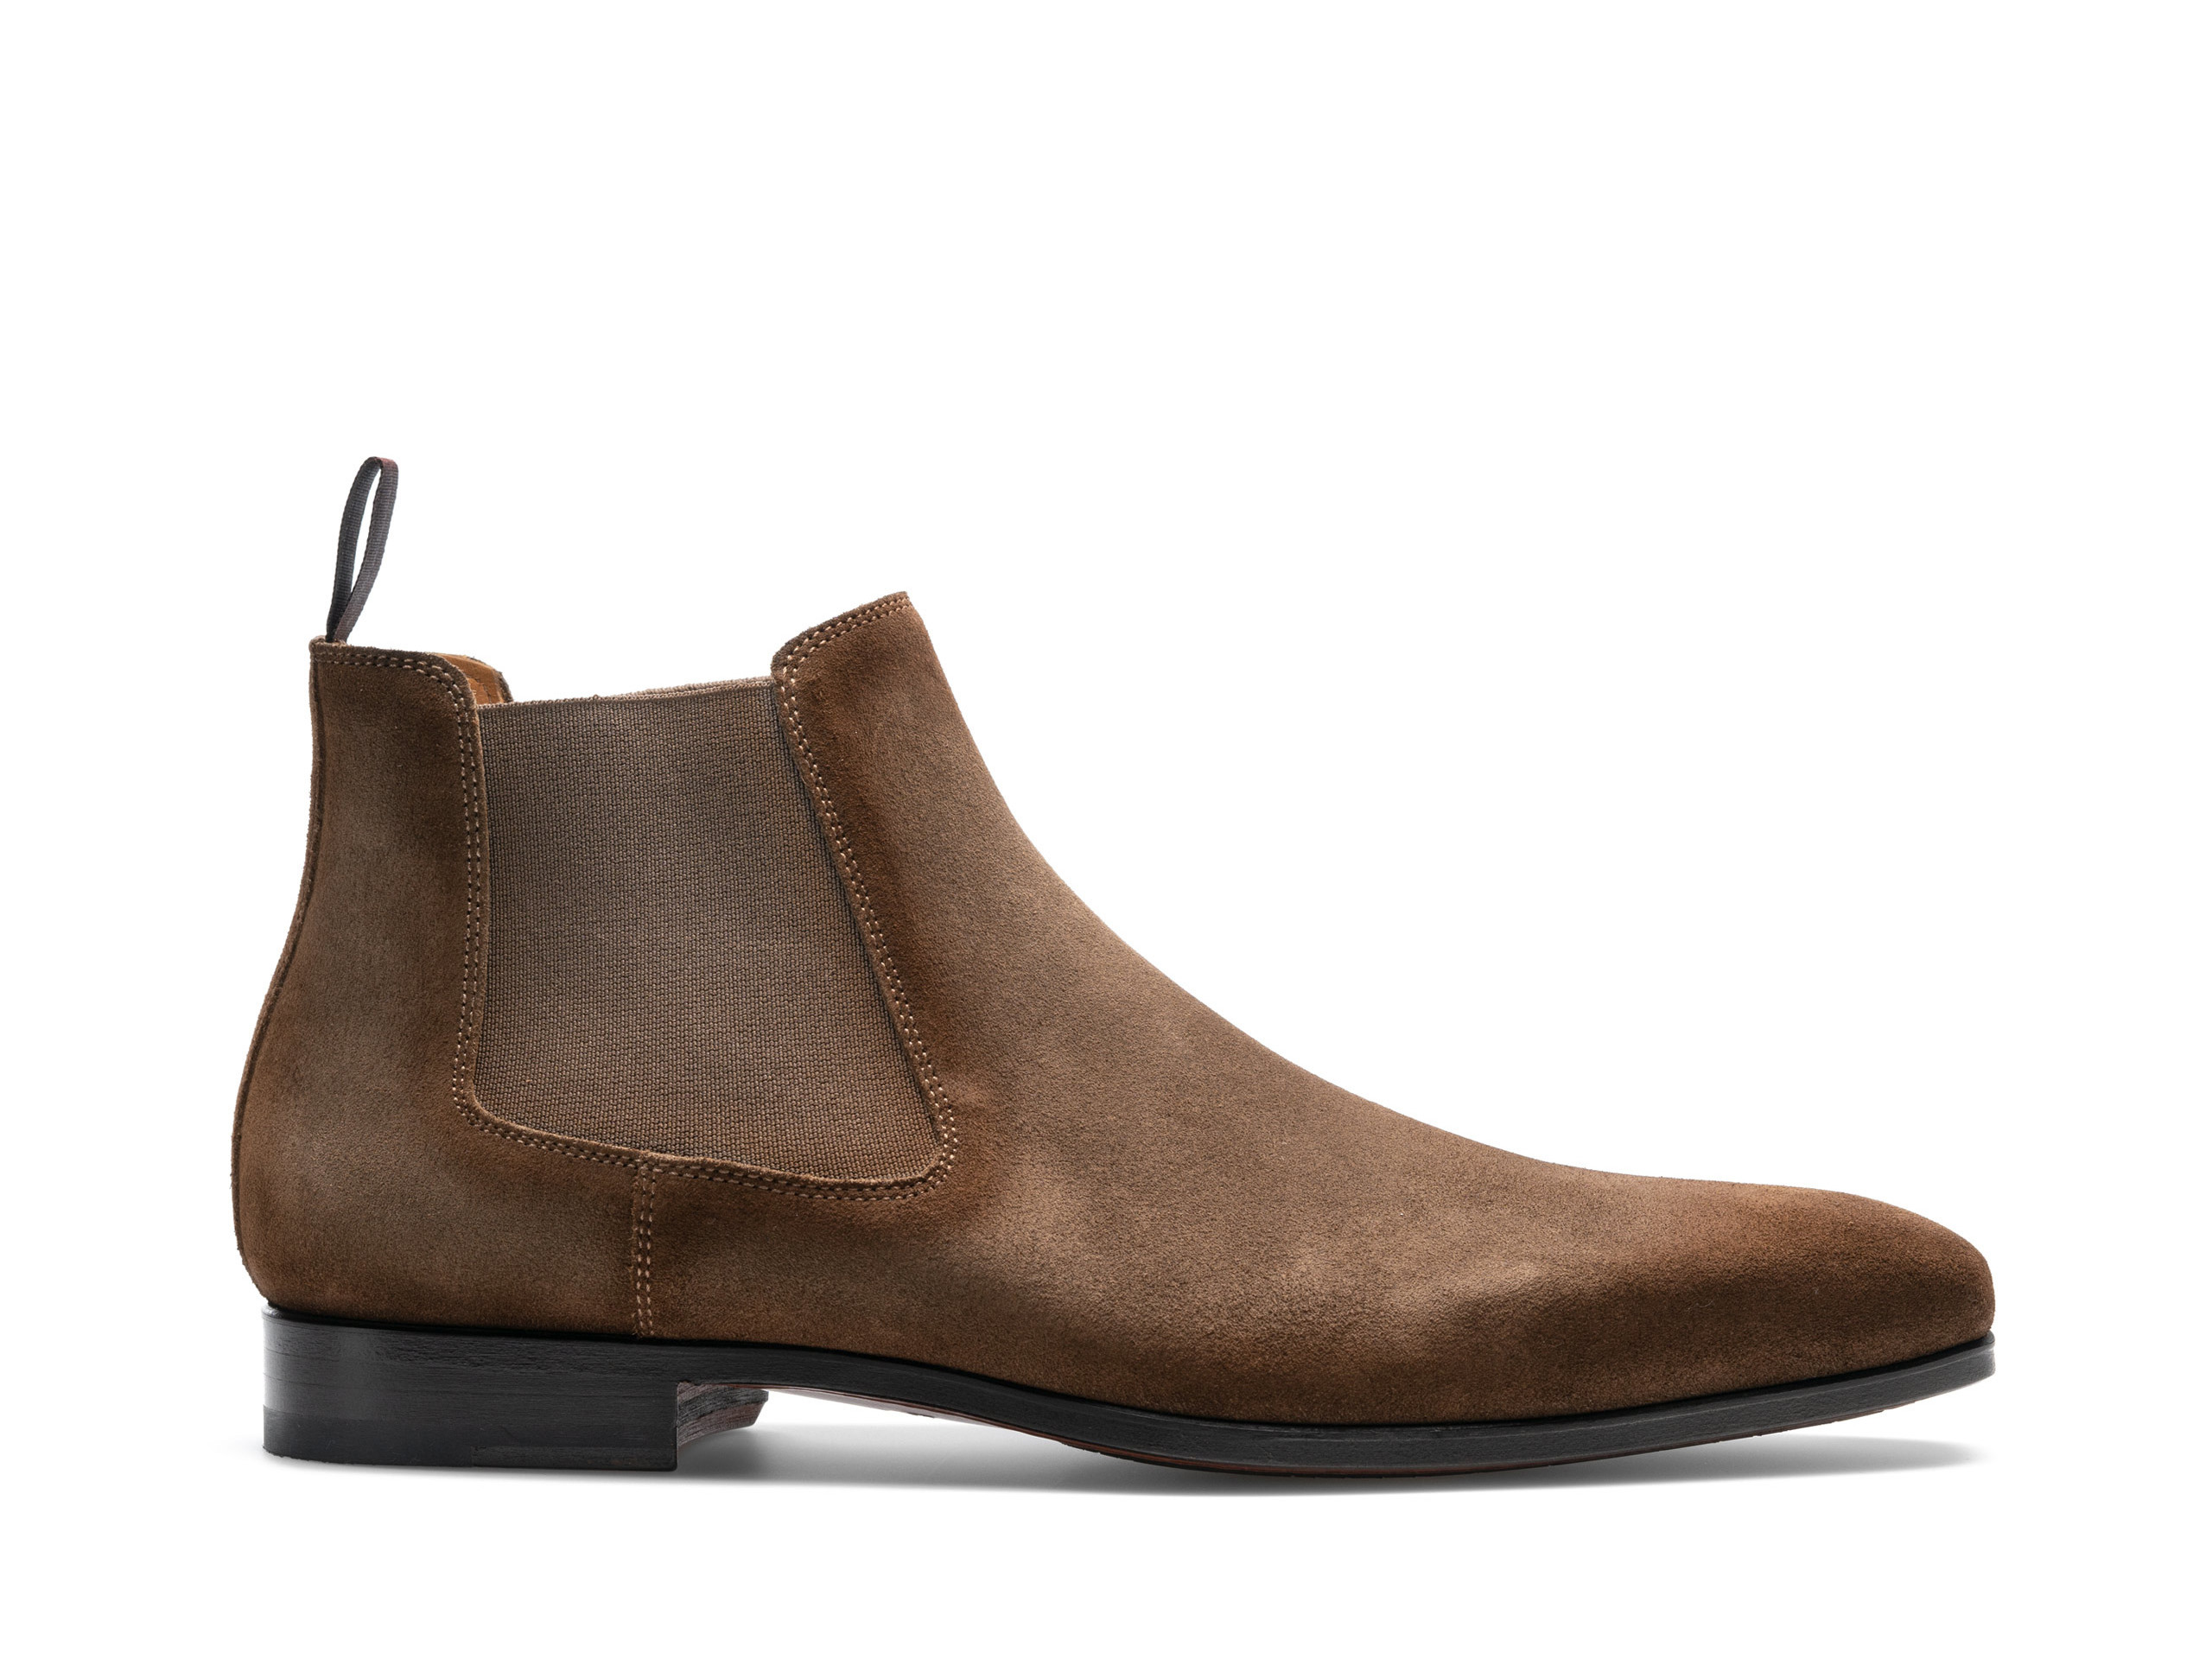 Side view of the Magnanni Shaw II Torba Suede Men's Leather Chelsea Boots